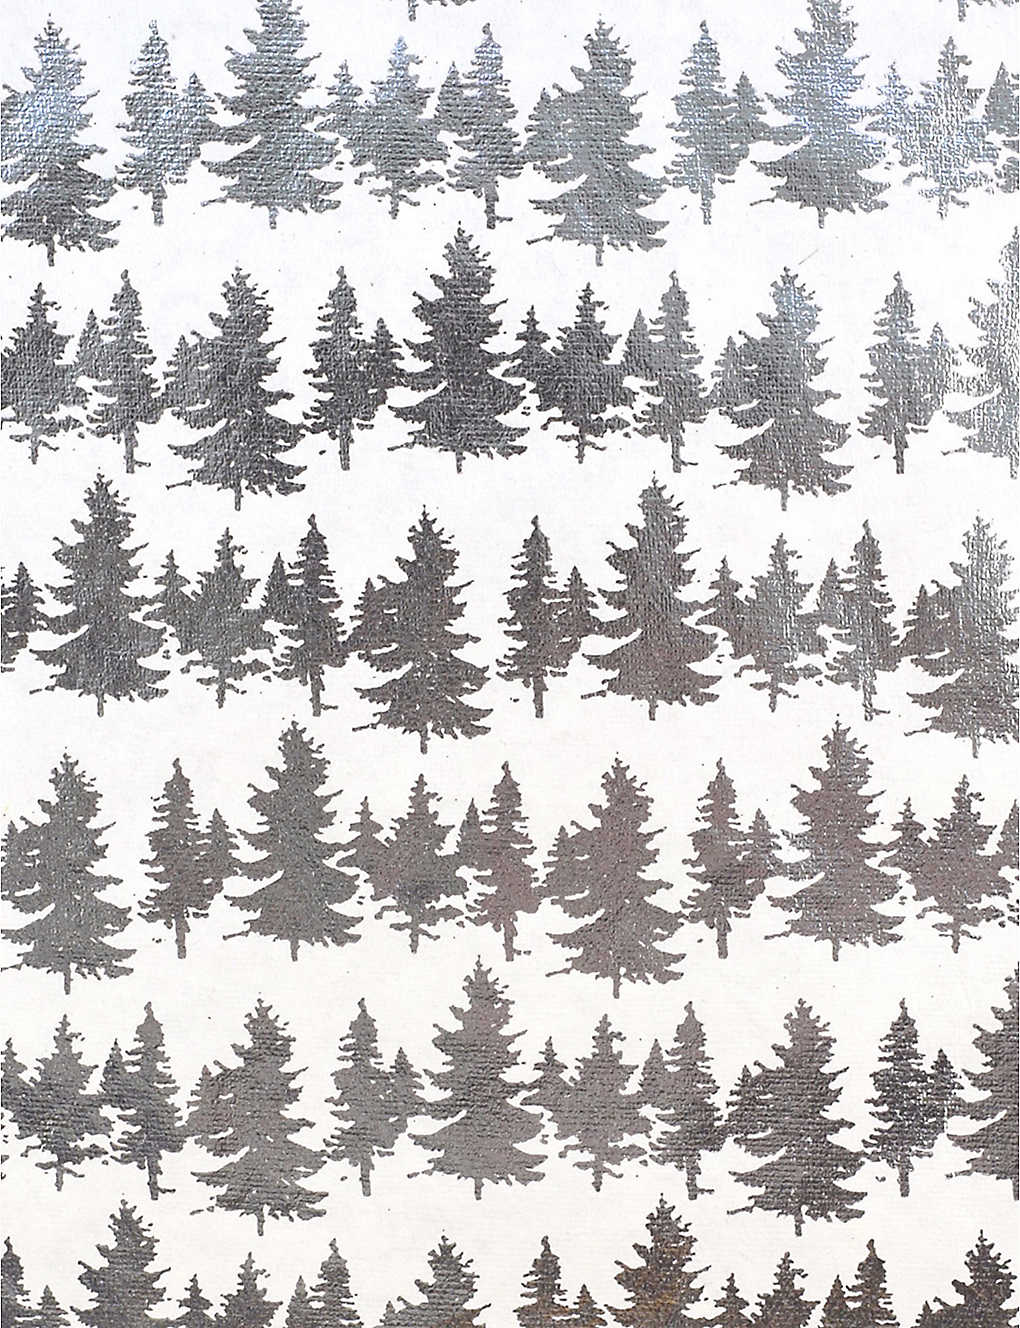 VIVID WRAP: Pine Forest recycled cotton paper gift wrap sheet 70cm x 50cm